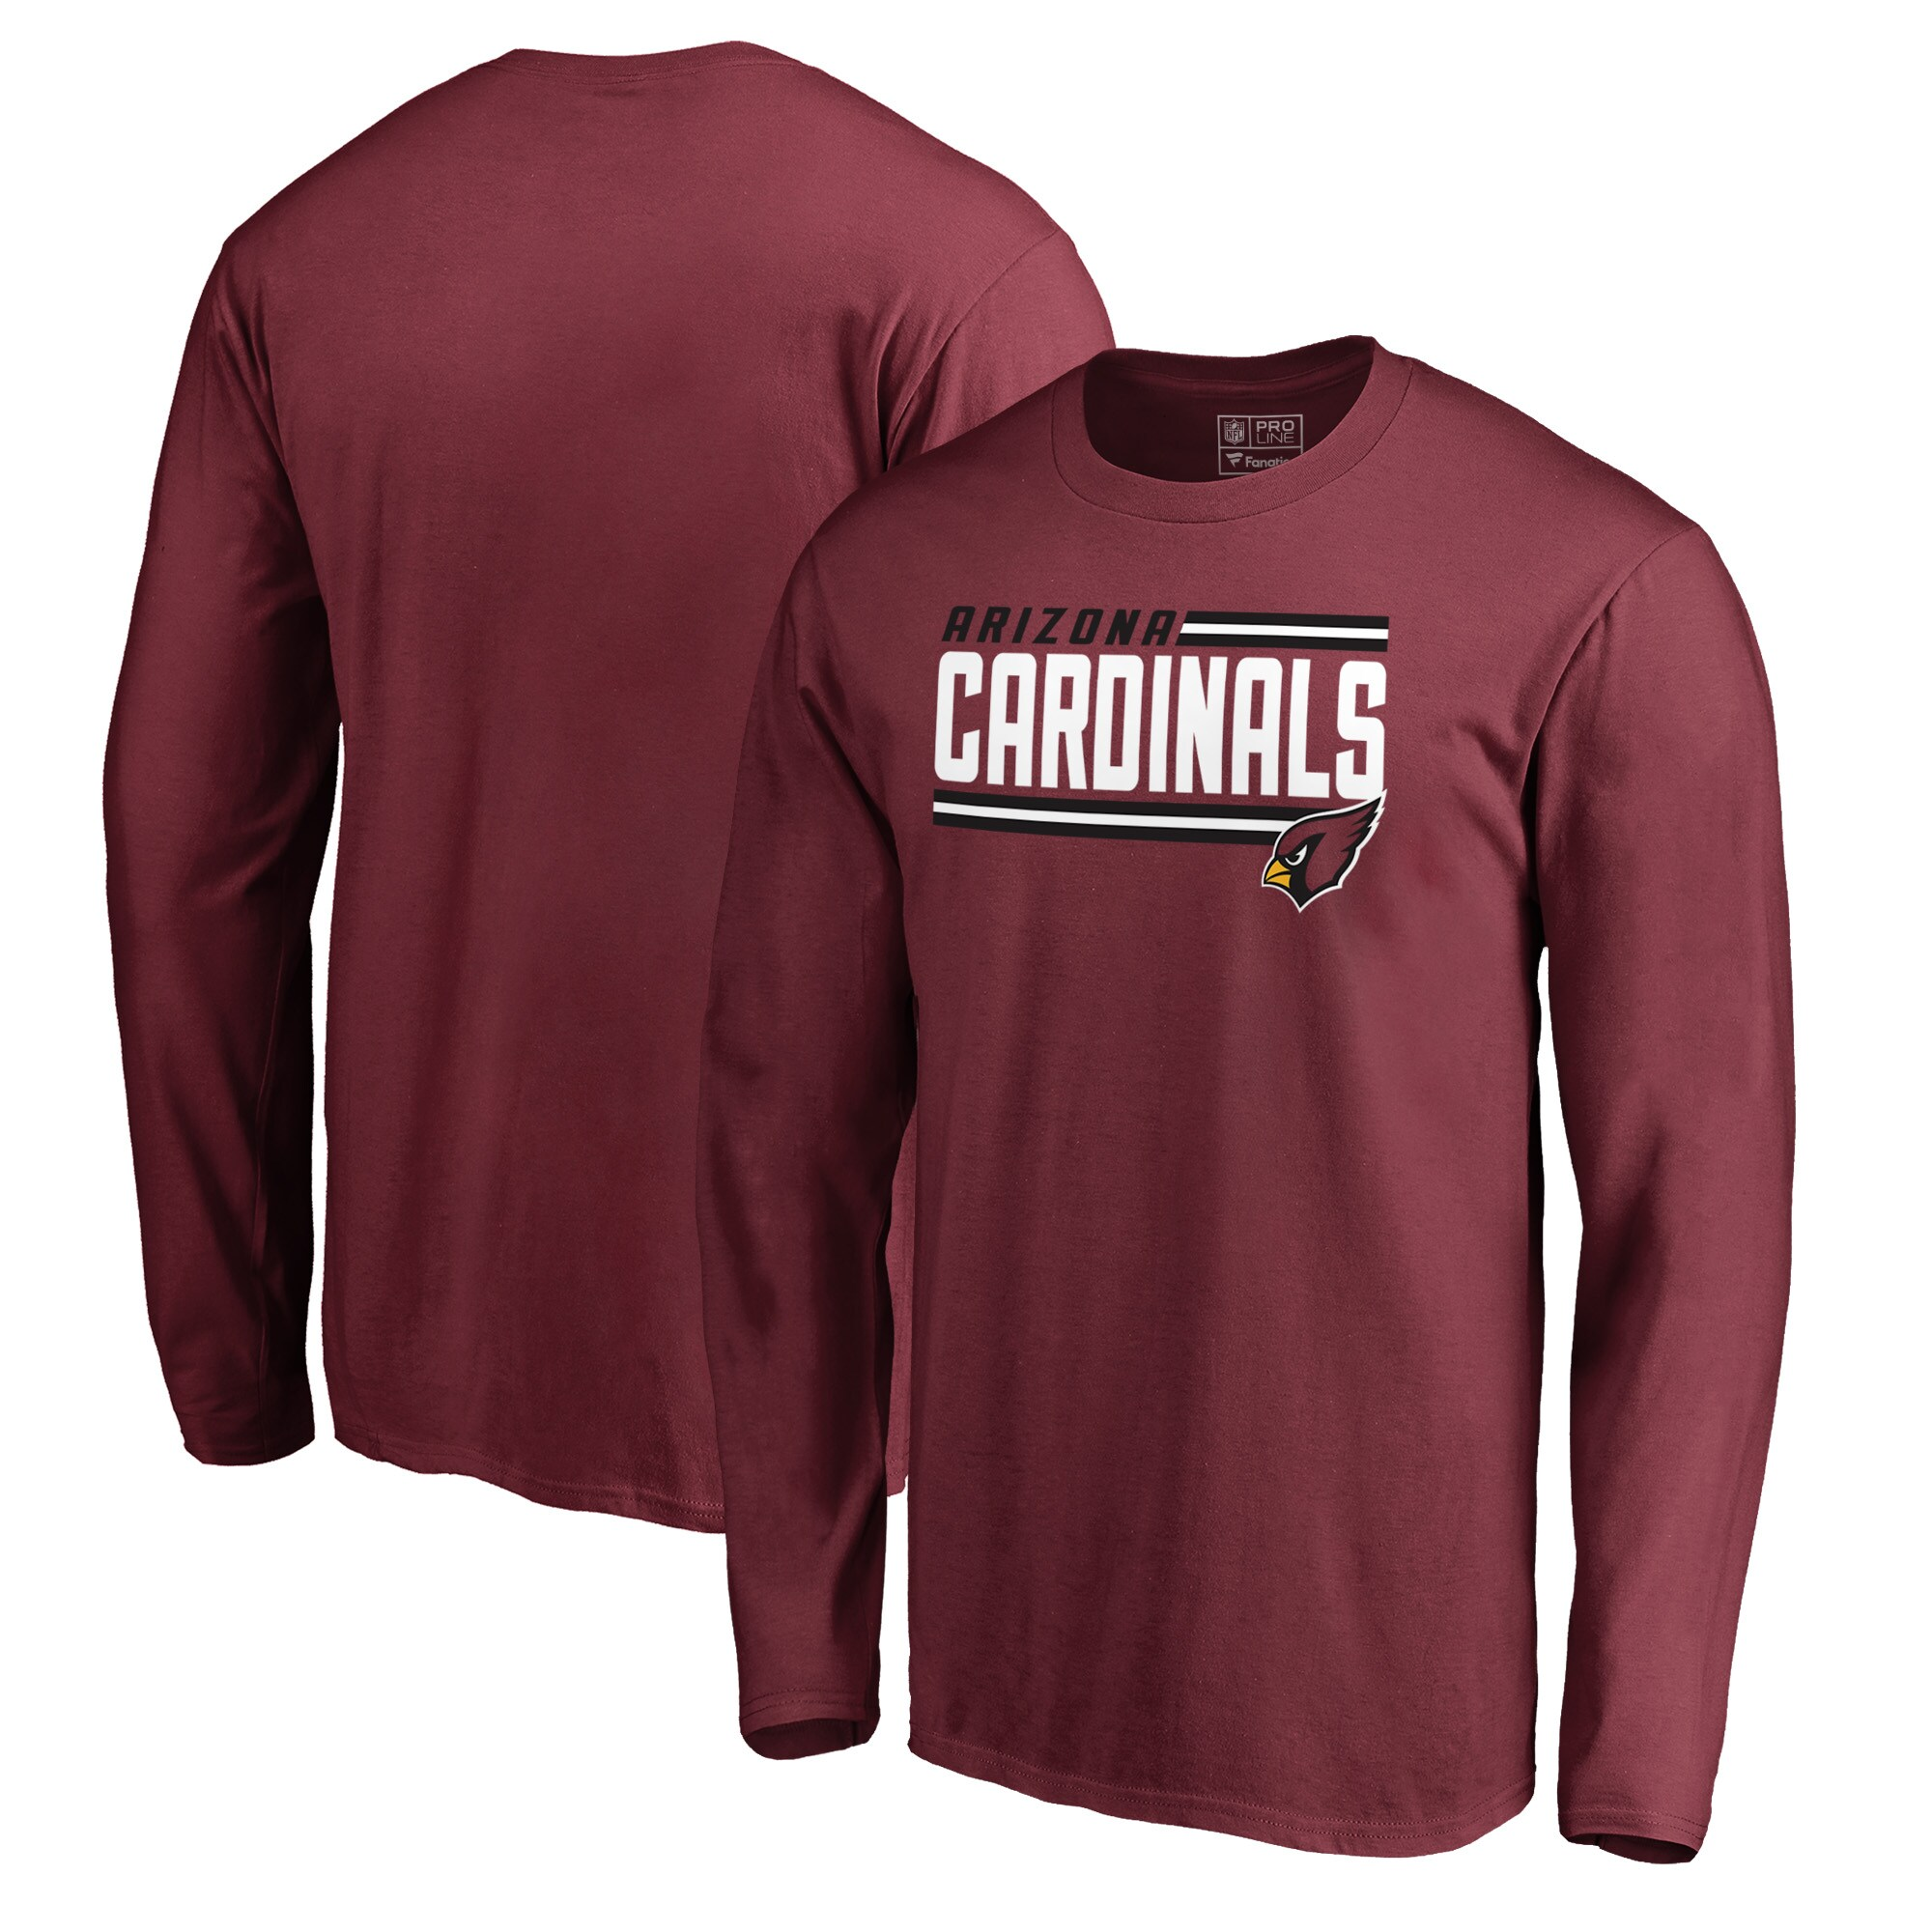 Arizona Cardinals NFL Pro Line by Fanatics Branded Iconic Collection On Side Stripe Long Sleeve T-Shirt - Cardinal